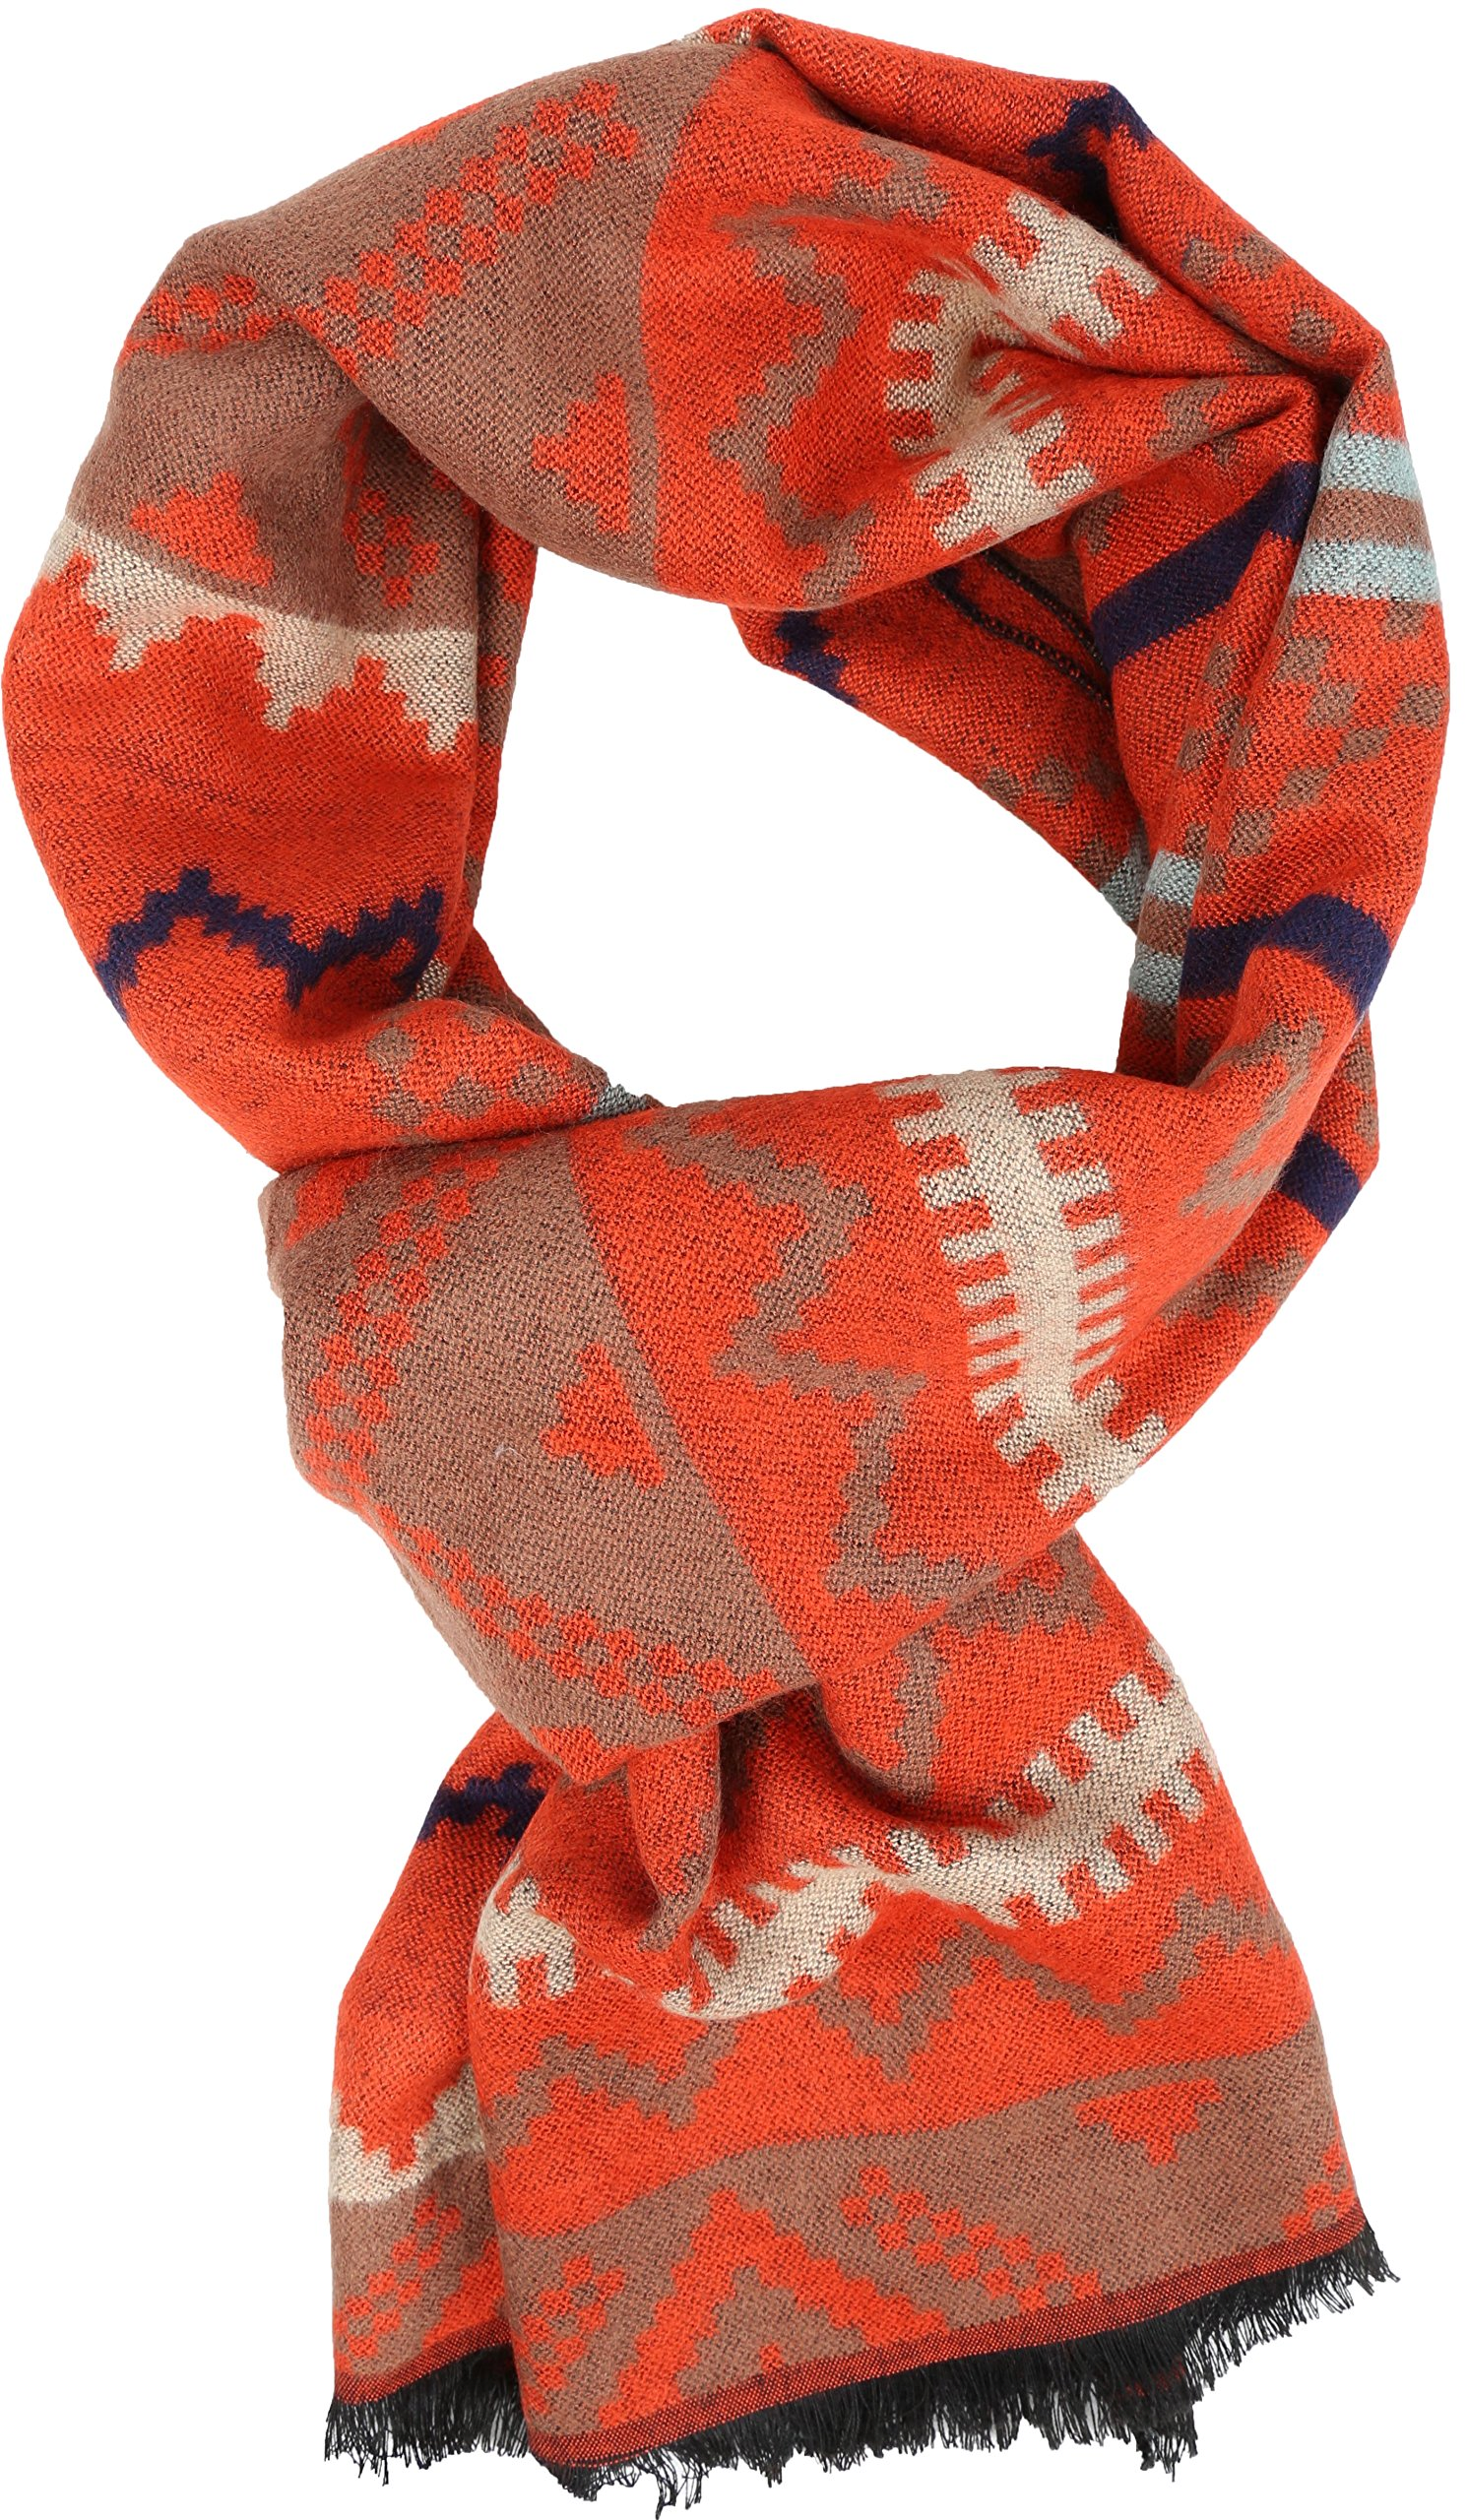 Sakkas 16129 - Xayn Long Aztec Tribal Warm Patterned UniSex Cashmere Feel Scarf - Orange - OS